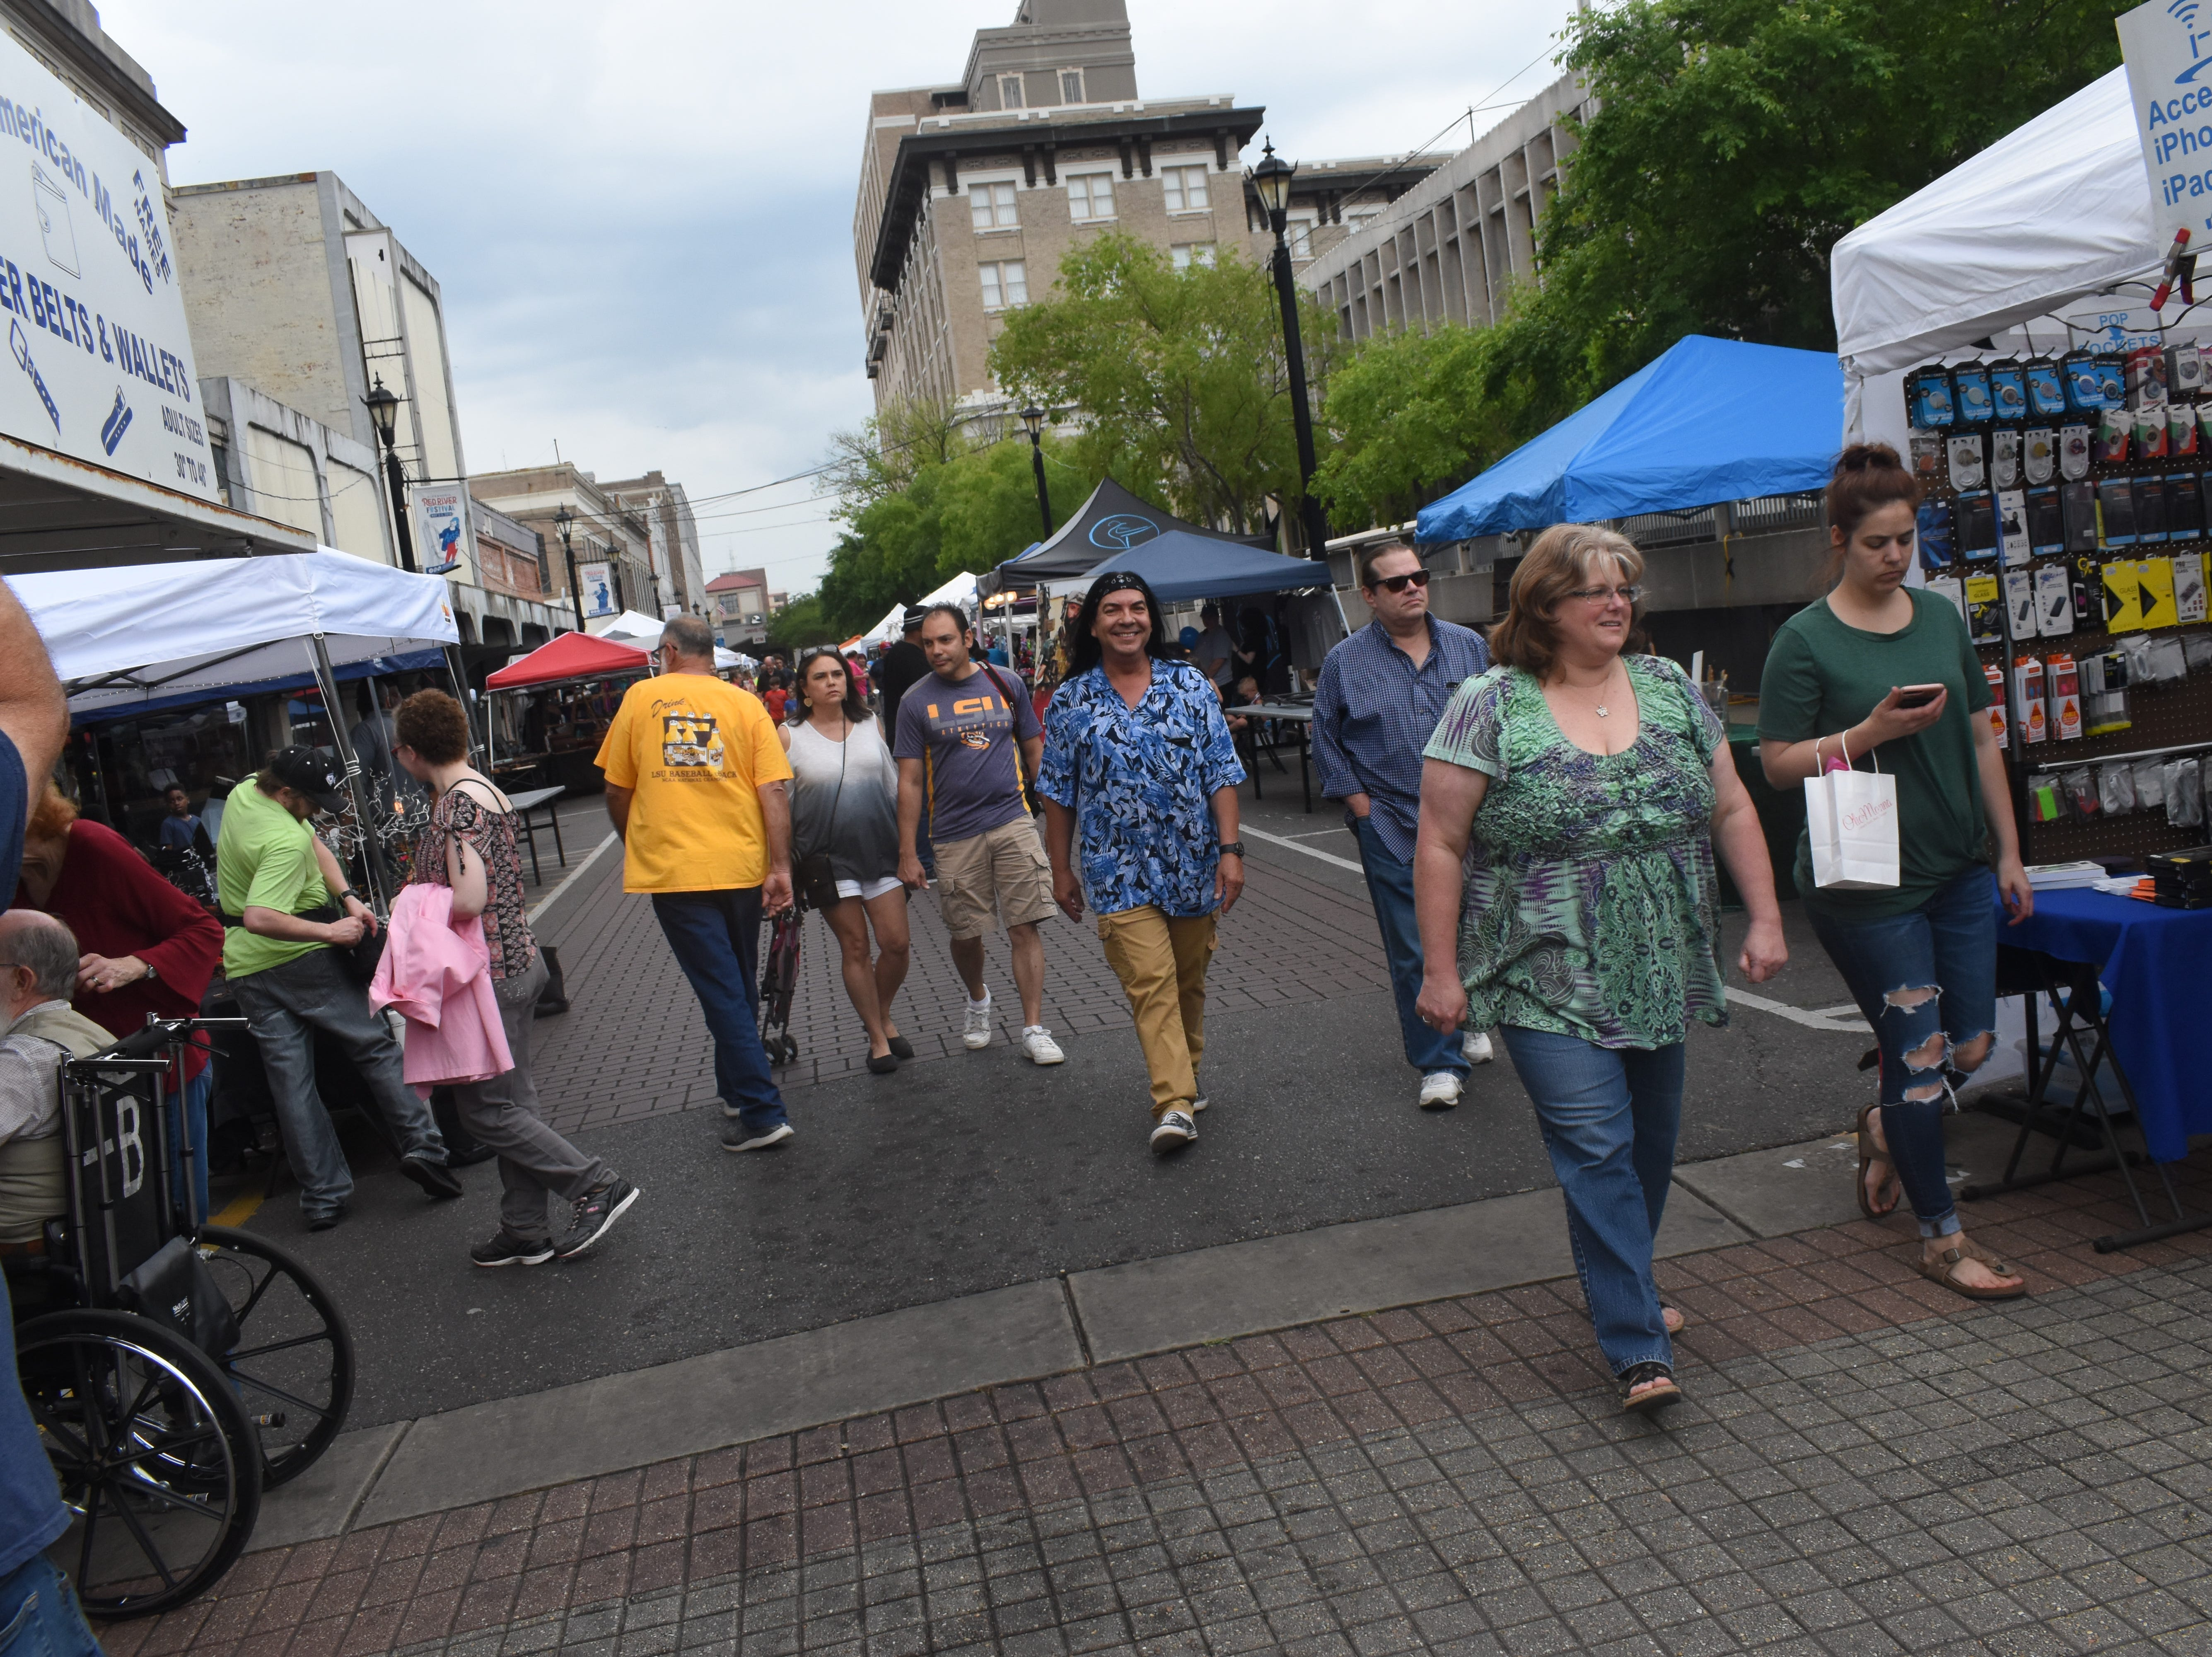 The Alexandria Red River Festival kicked off Friday, May 3, 2019 in downtown Alexandria with vendors, street performers and live music. The event continues Saturday along with with a bbq cookoff, classic car and truck show. The Louisiana Dragon Boat Races will be held at Lake Buhlow in Pineville starting at 9 a.m.